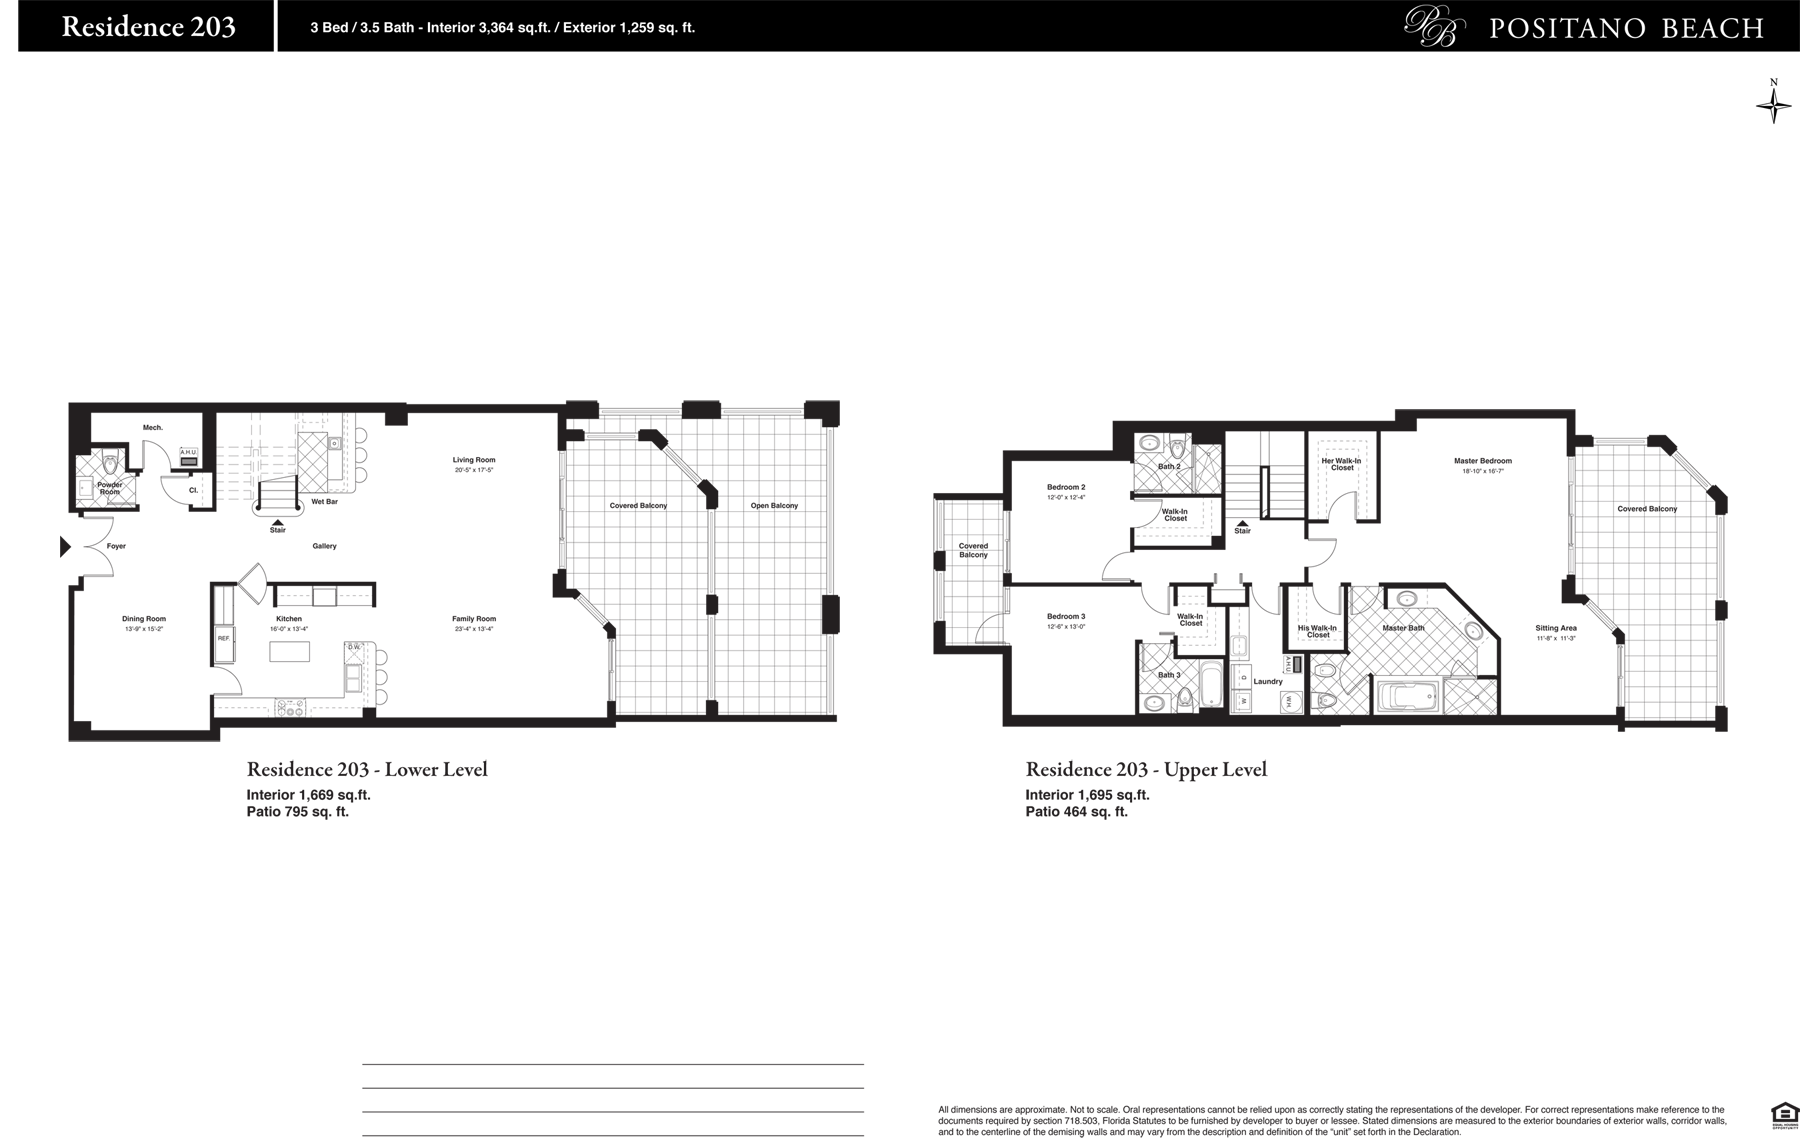 Positano Beach - Floorplan 11